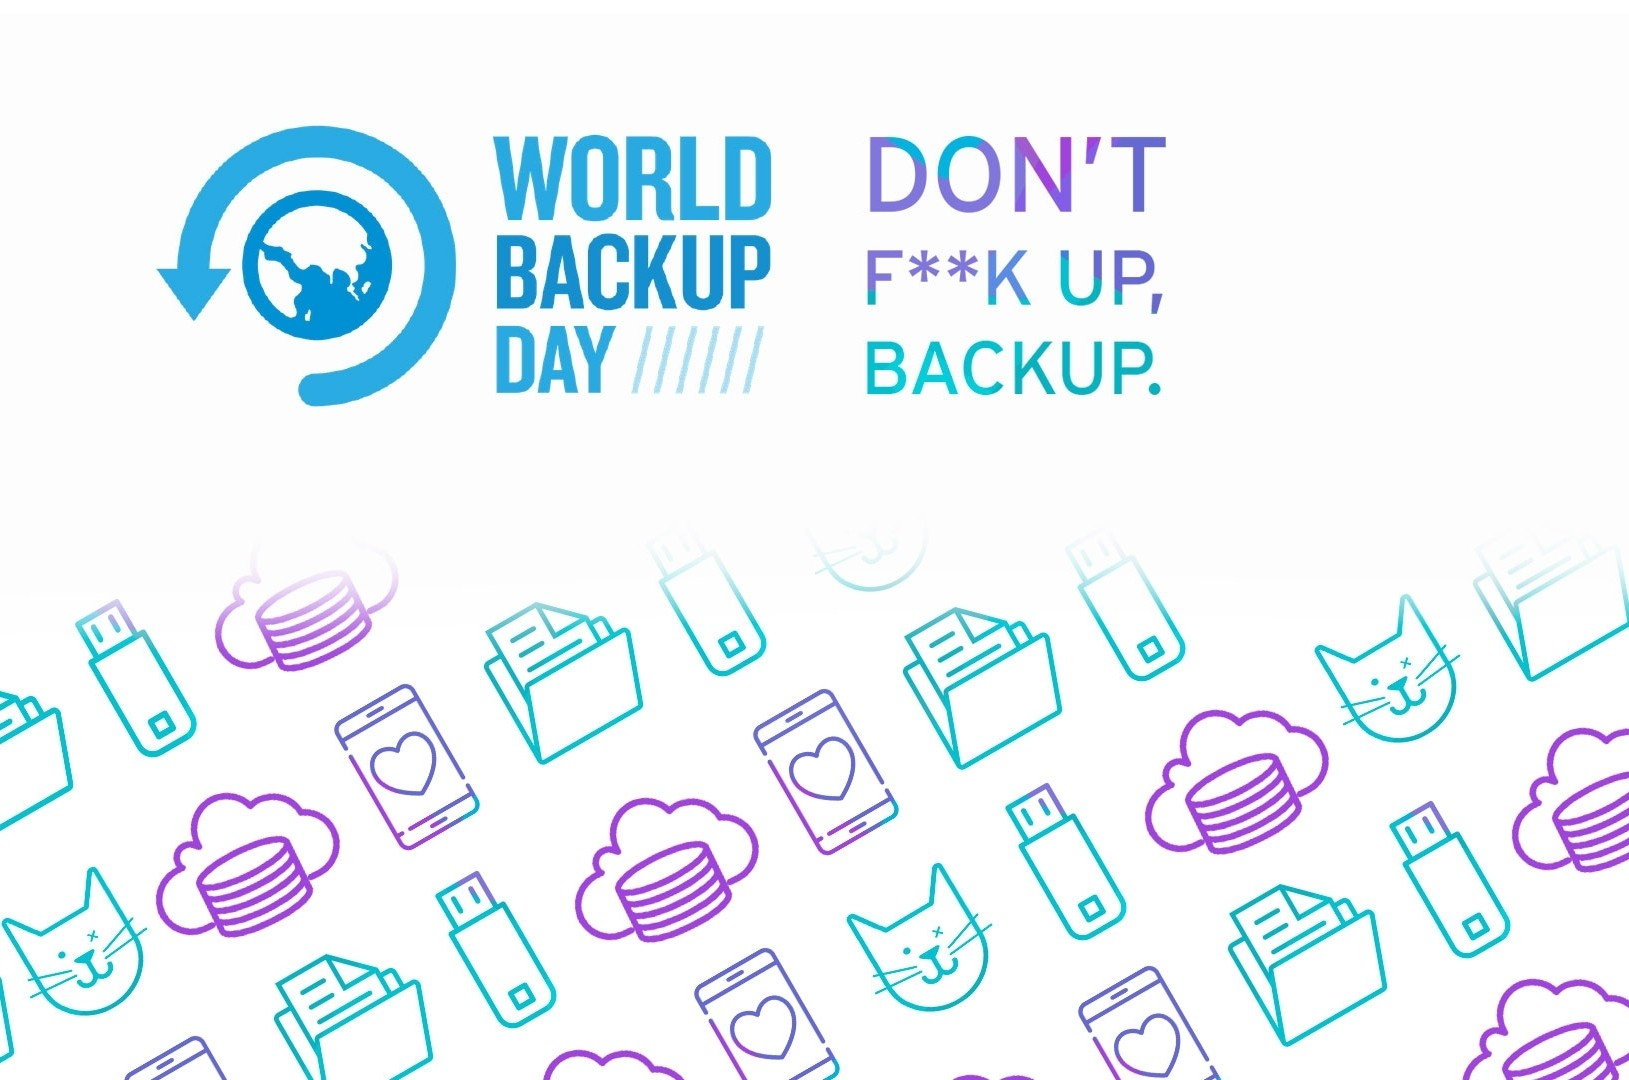 world-backup-00001